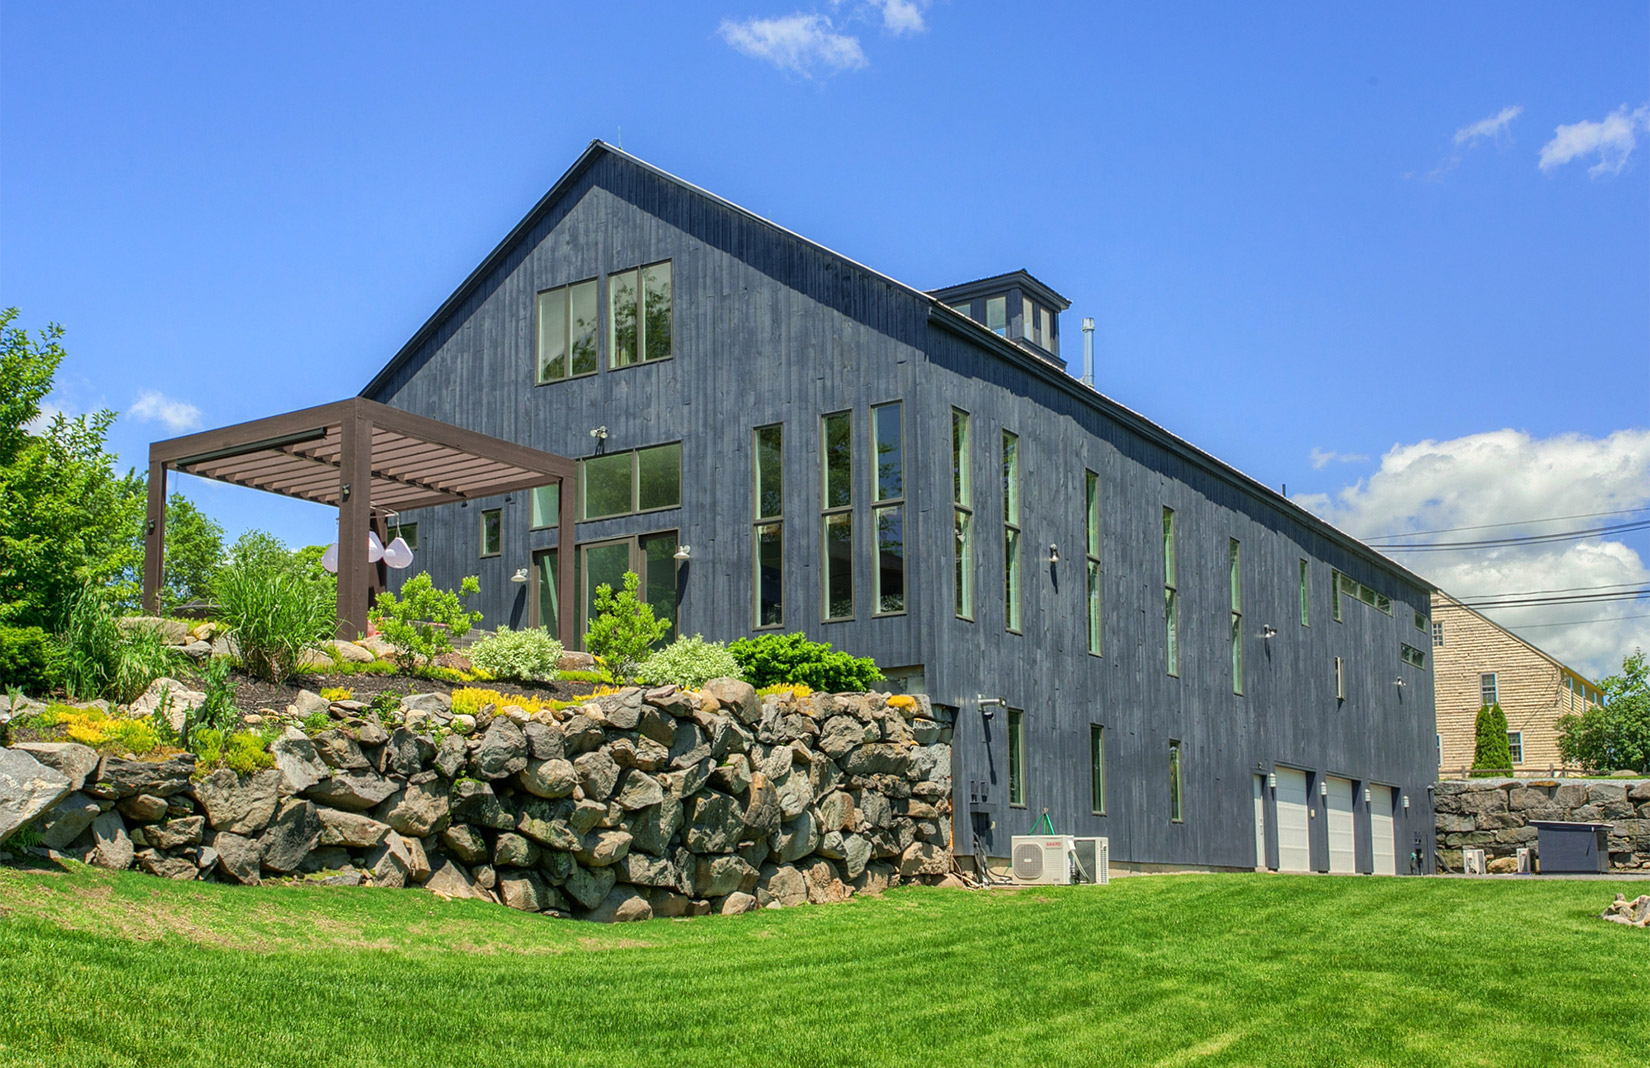 Converted dairy farm near Boston hits the market for $925,000